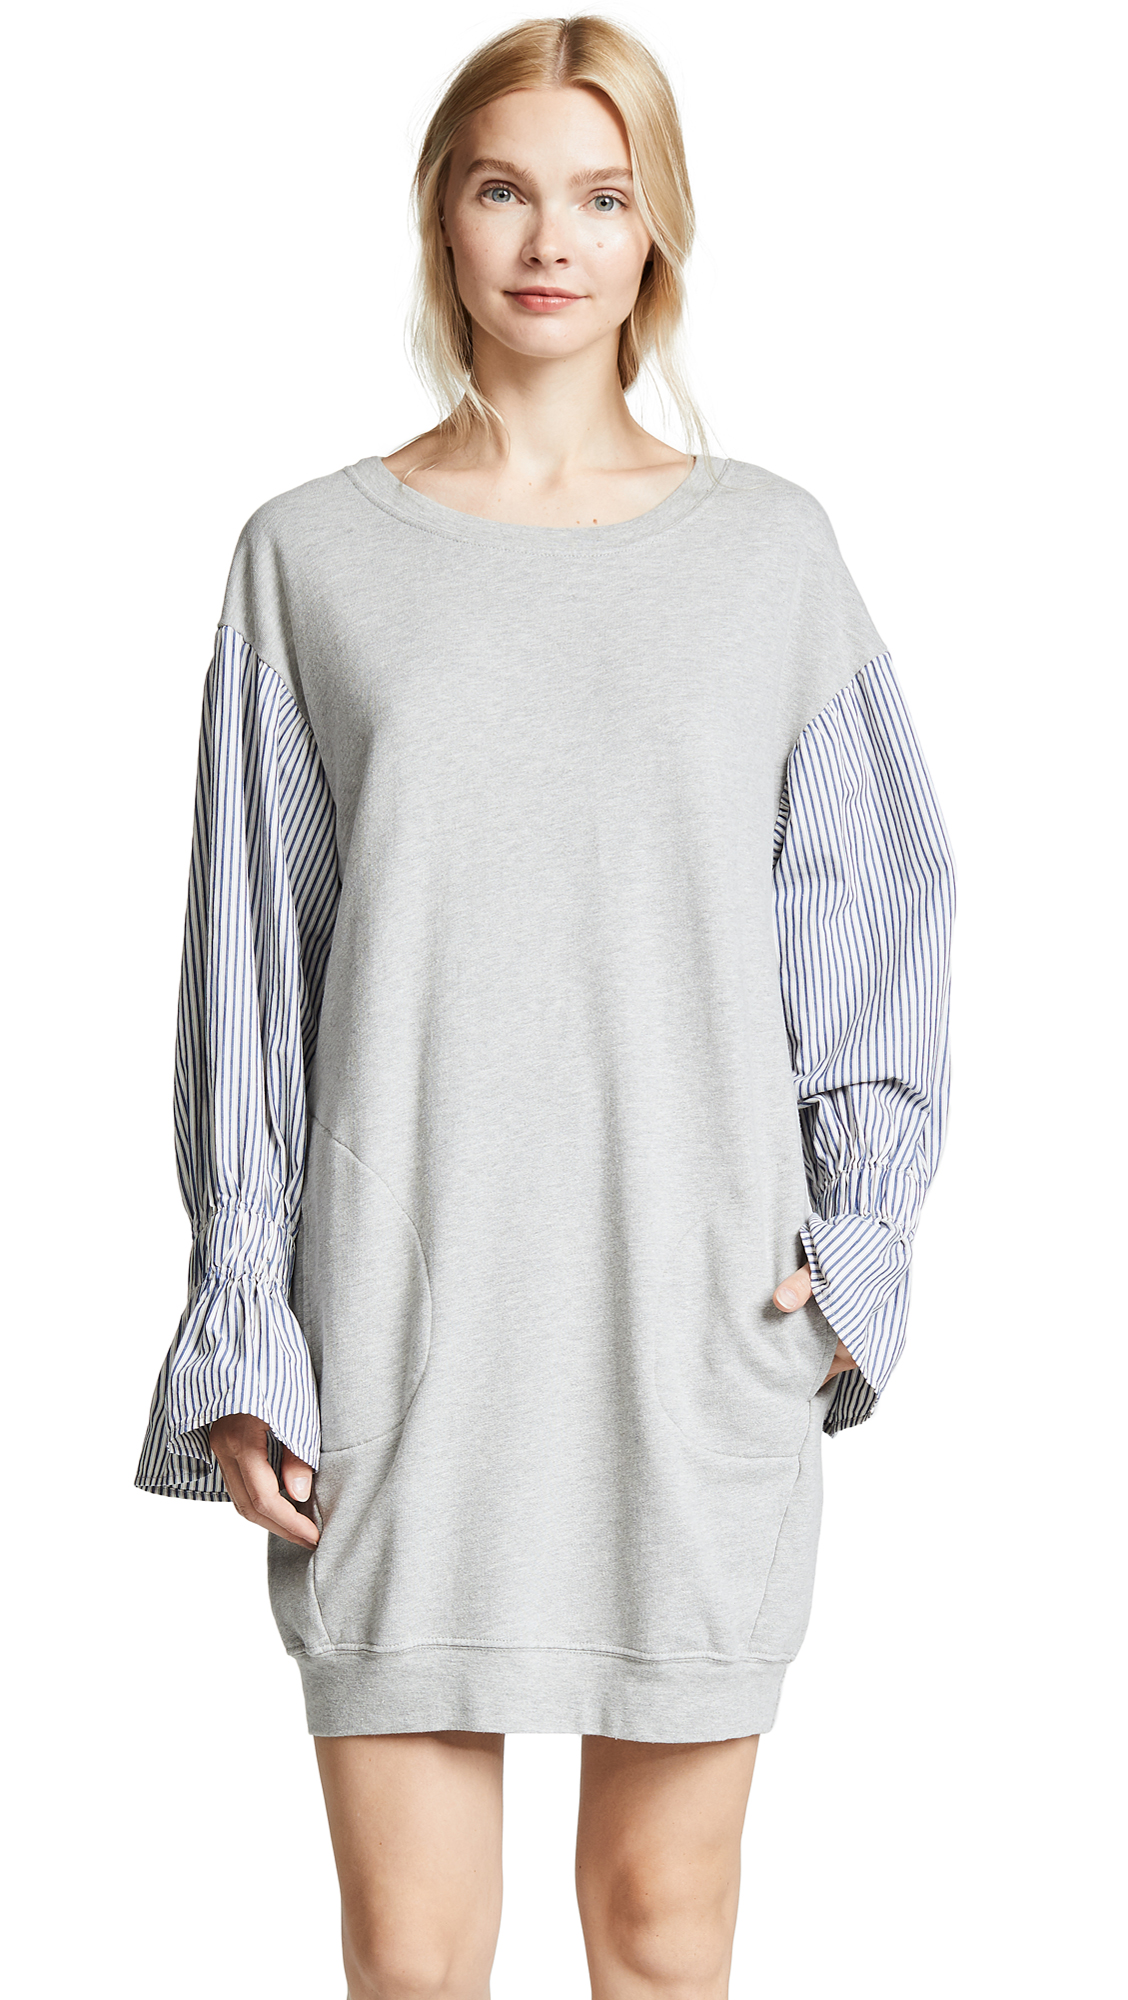 Stateside Sweatshirt Combo Dress In Heather Grey